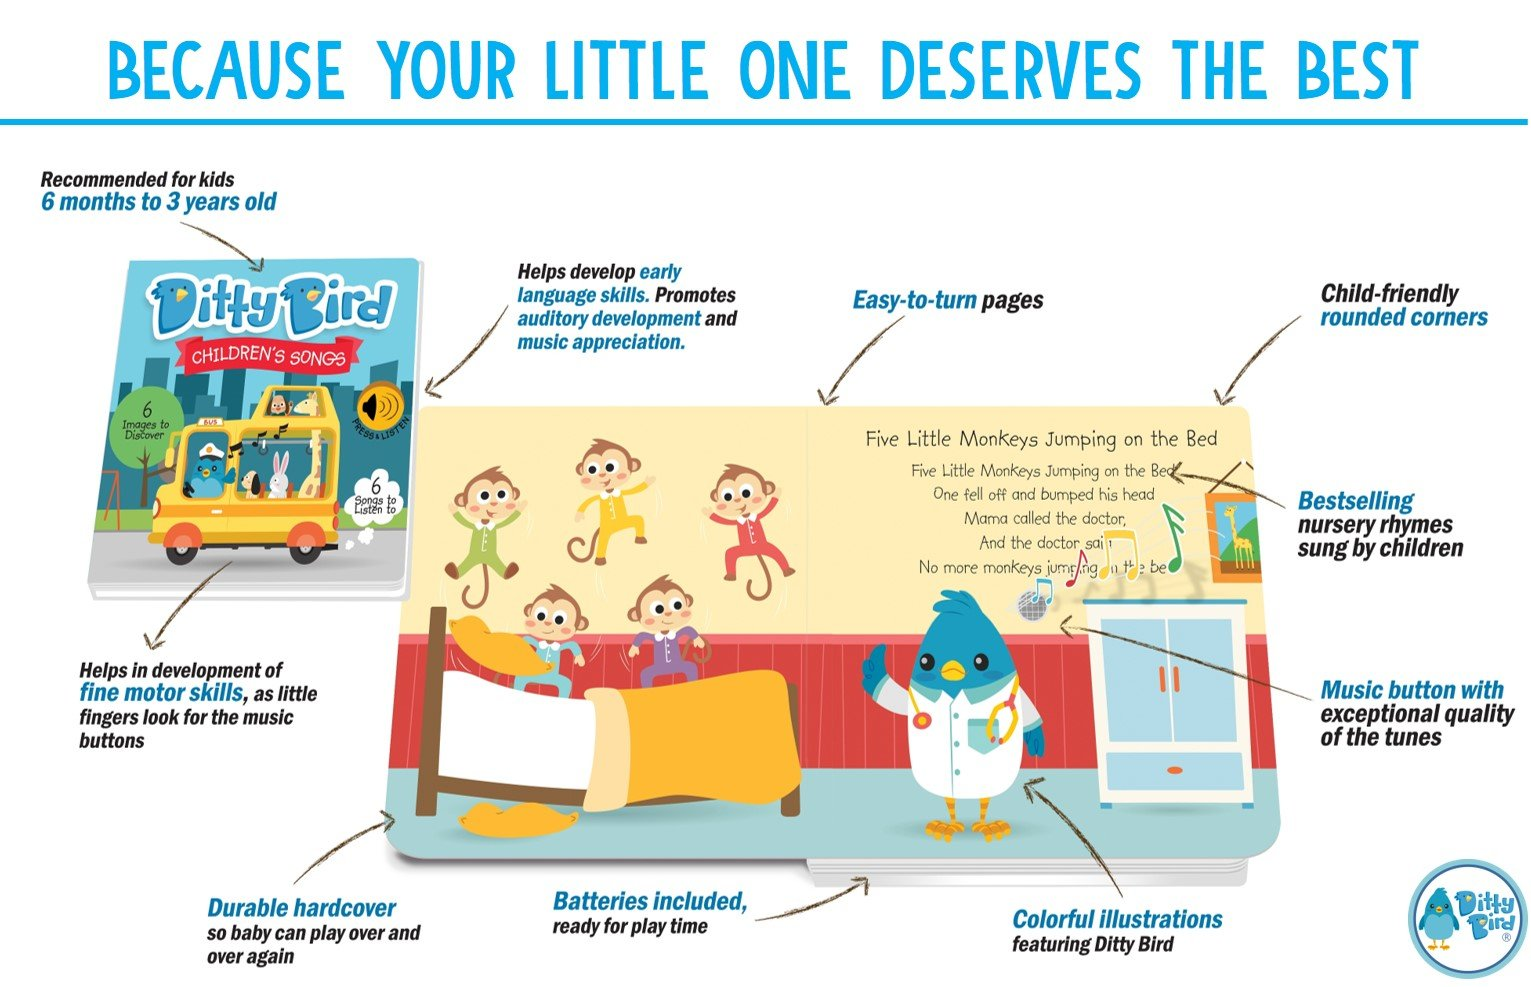 Our Best Interactive Children's Songs Book for Babies. Musical Toddler Book. Sound Books for one Year Old. Educational Toys for 1 Year Old boy Gifts. Gift for 1 Year Old Girl. Awards Winner! Blue by DITTY BIRD (Image #4)